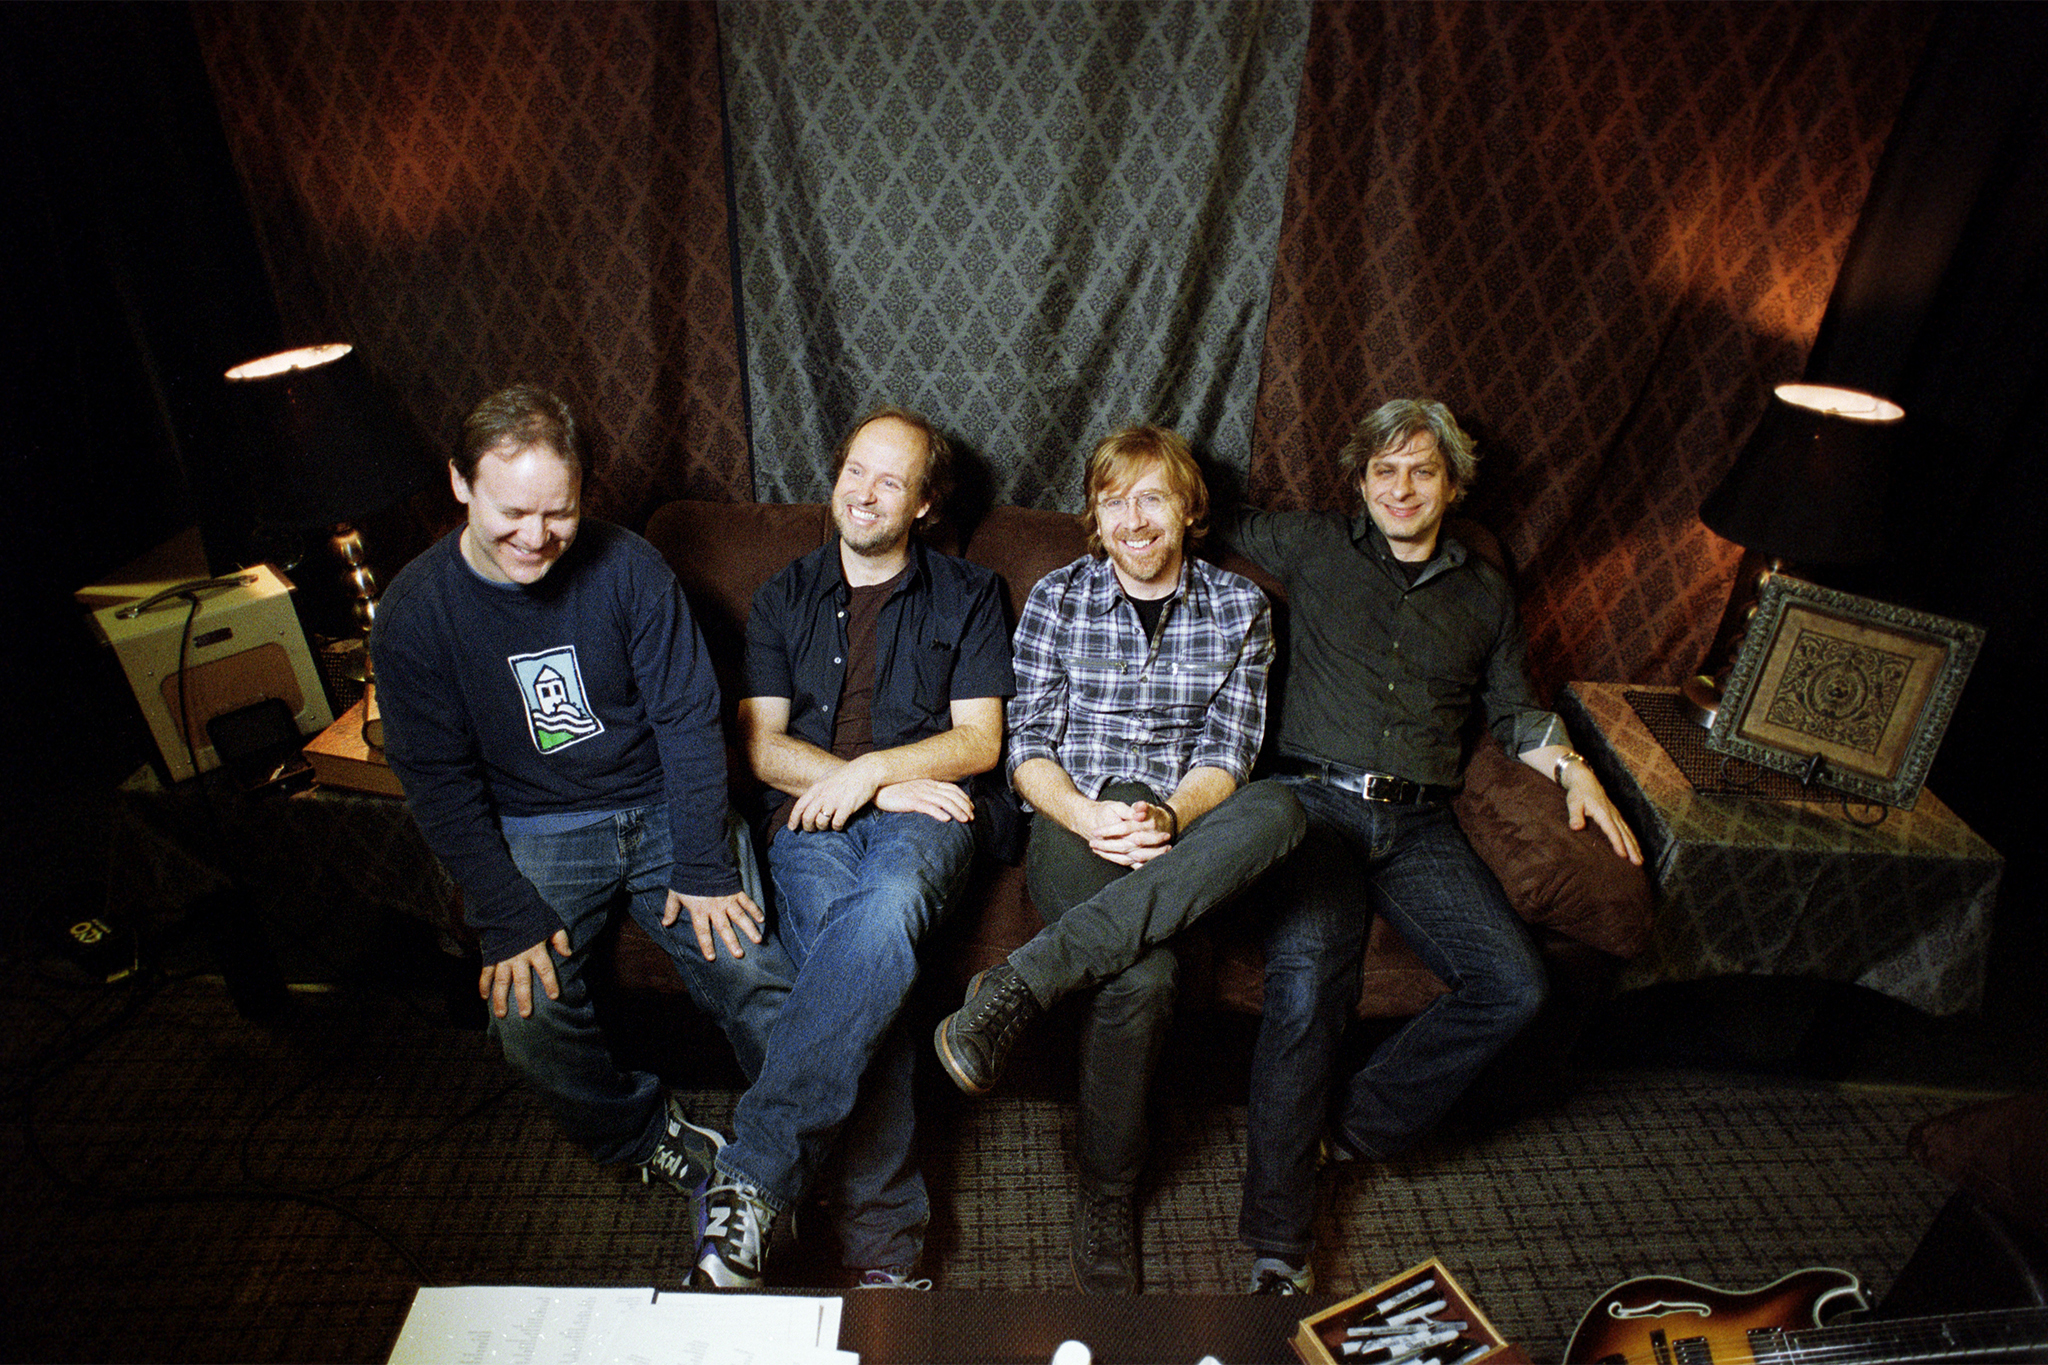 Phish is playing at Wrigley Field this summer